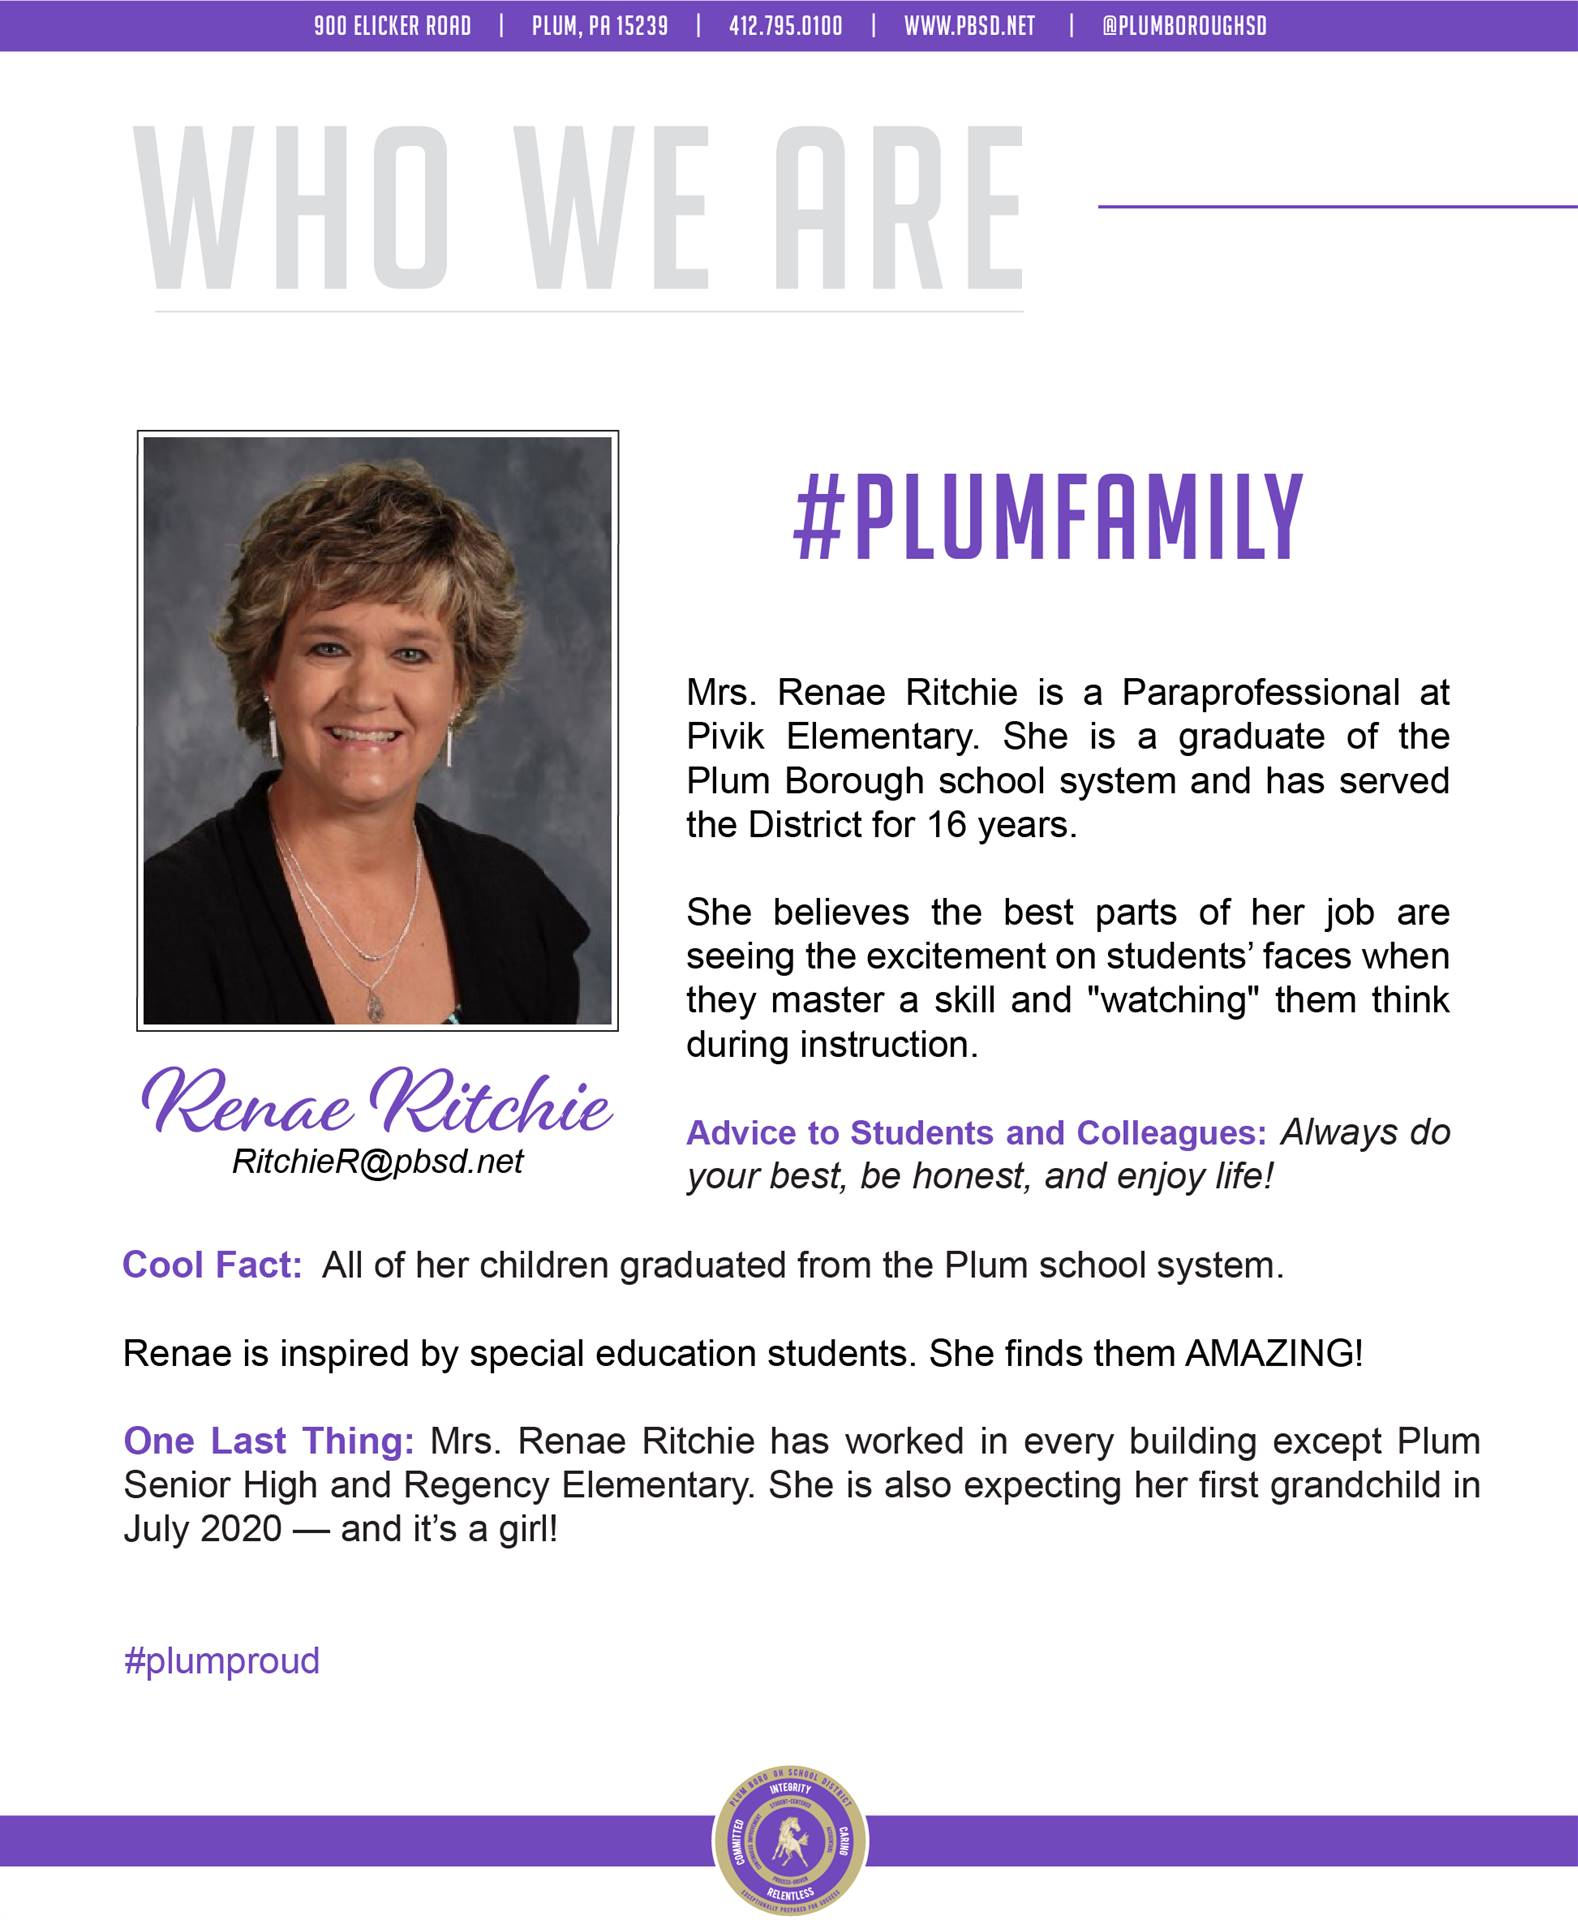 Who We Are Wednesday features Renae Ritchie.